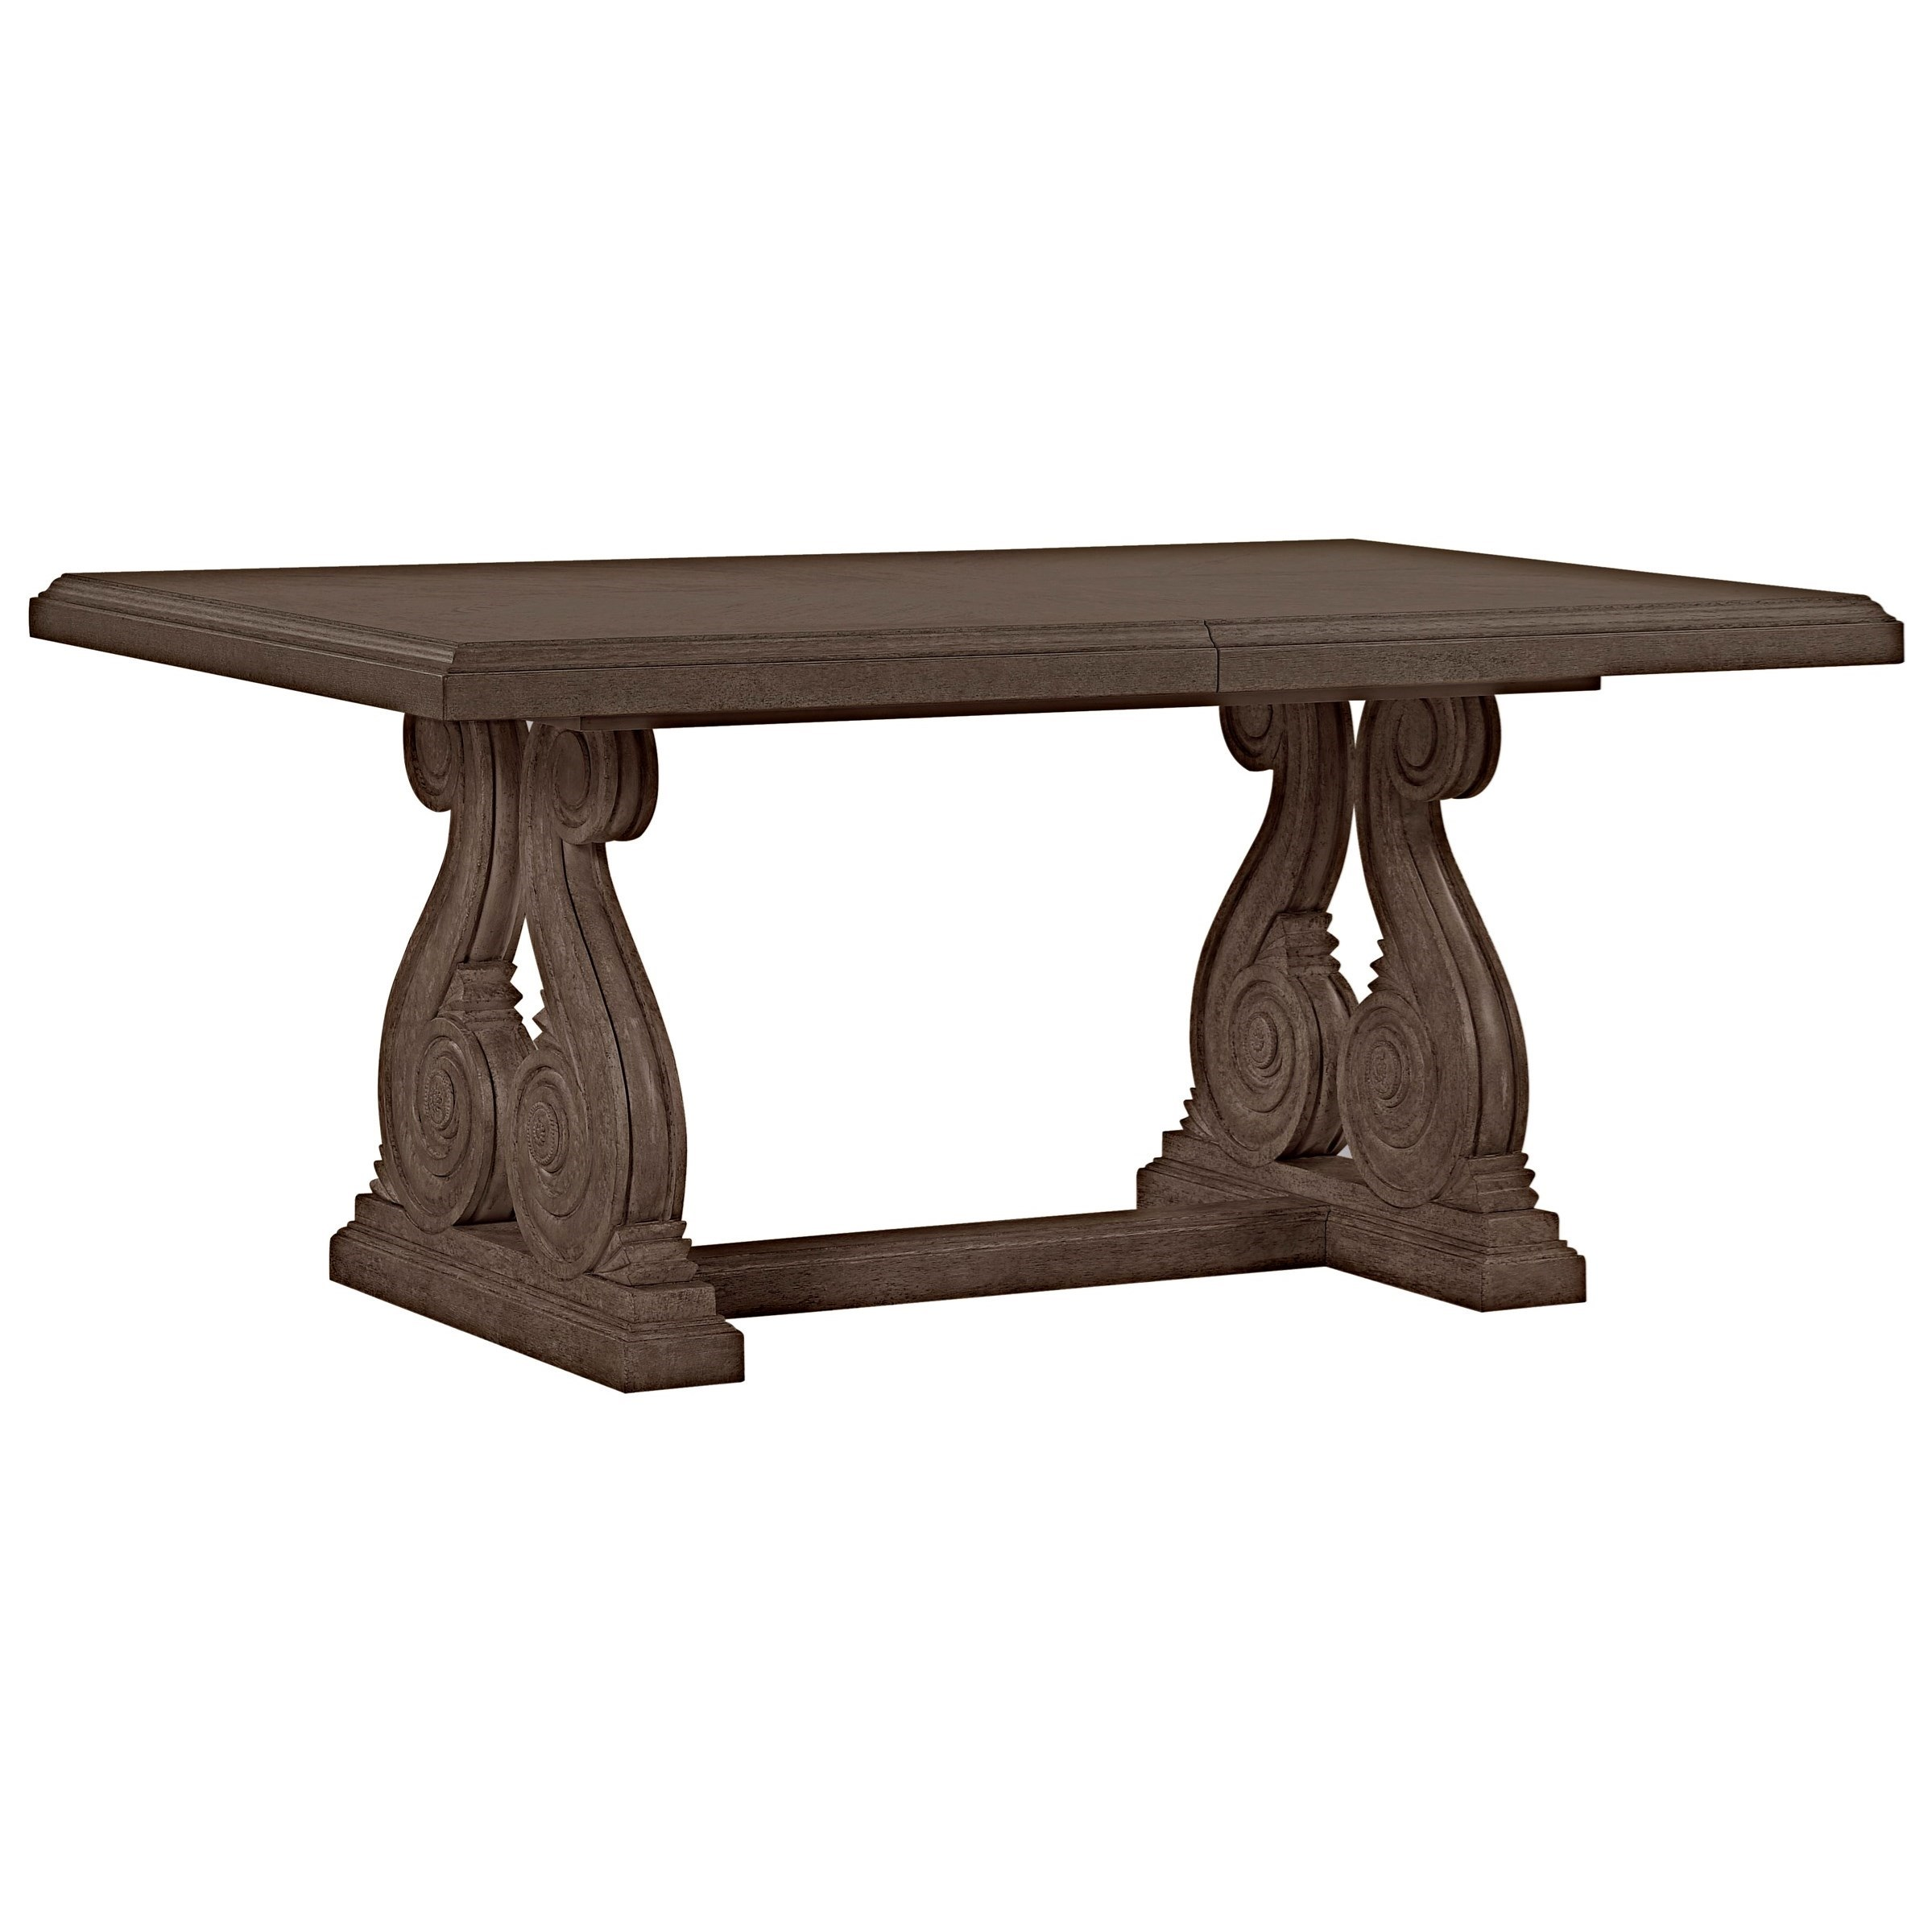 Vintage Salvage  Rectangular Dining Table by A.R.T. Furniture Inc at Home Collections Furniture